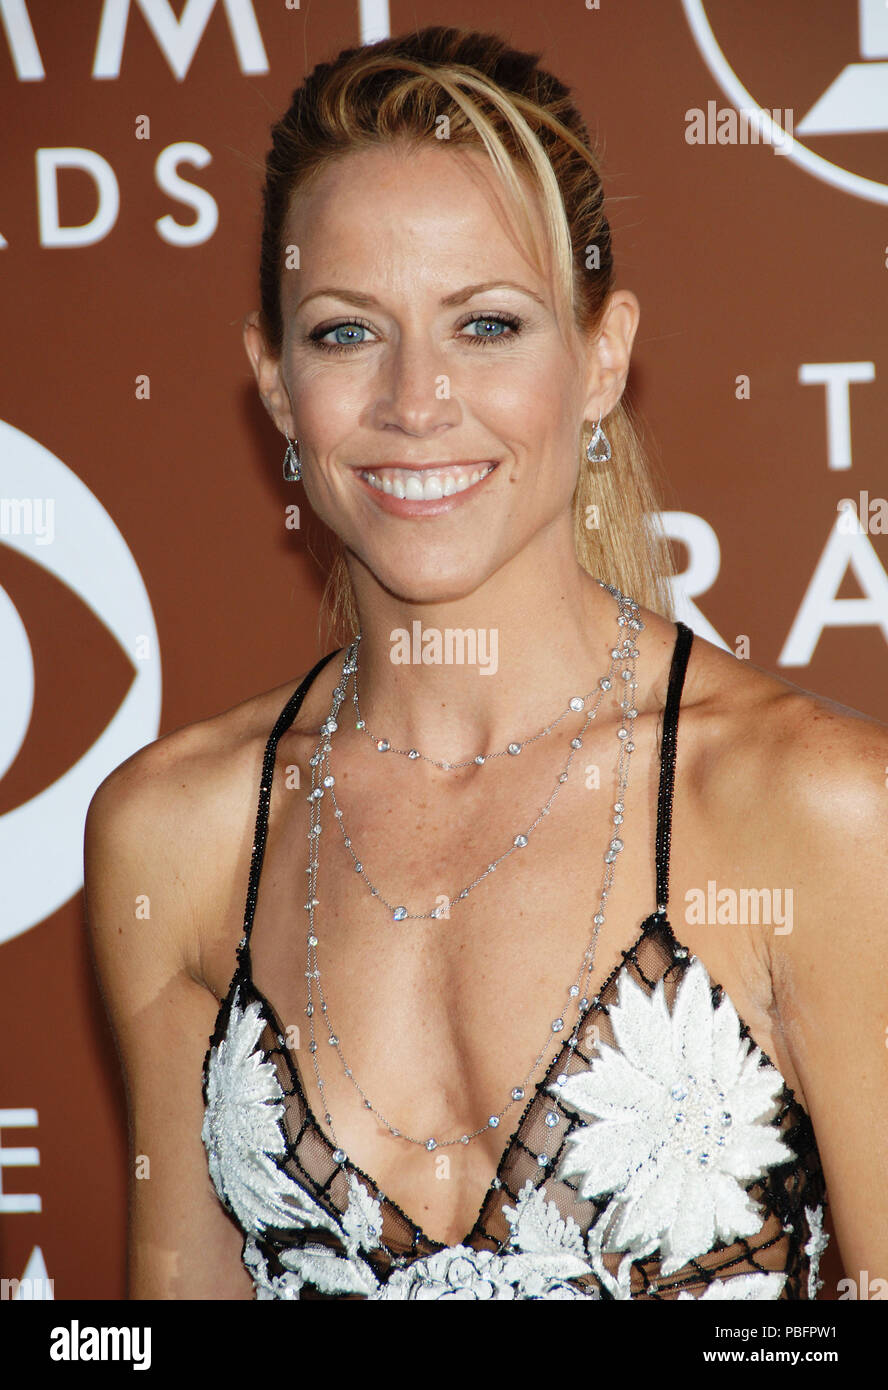 Sheryl Crow arriving at the 48th Grammy Awards at the  Staples Center In Los Angeles, Wednesday February 8, 200612_CrowSheryl140 Red Carpet Event, Vertical, USA, Film Industry, Celebrities,  Photography, Bestof, Arts Culture and Entertainment, Topix Celebrities fashion /  Vertical, Best of, Event in Hollywood Life - California,  Red Carpet and backstage, USA, Film Industry, Celebrities,  movie celebrities, TV celebrities, Music celebrities, Photography, Bestof, Arts Culture and Entertainment,  Topix, headshot, vertical, one person,, from the year , 2006, inquiry tsuni@Gamma-USA.com - Stock Image